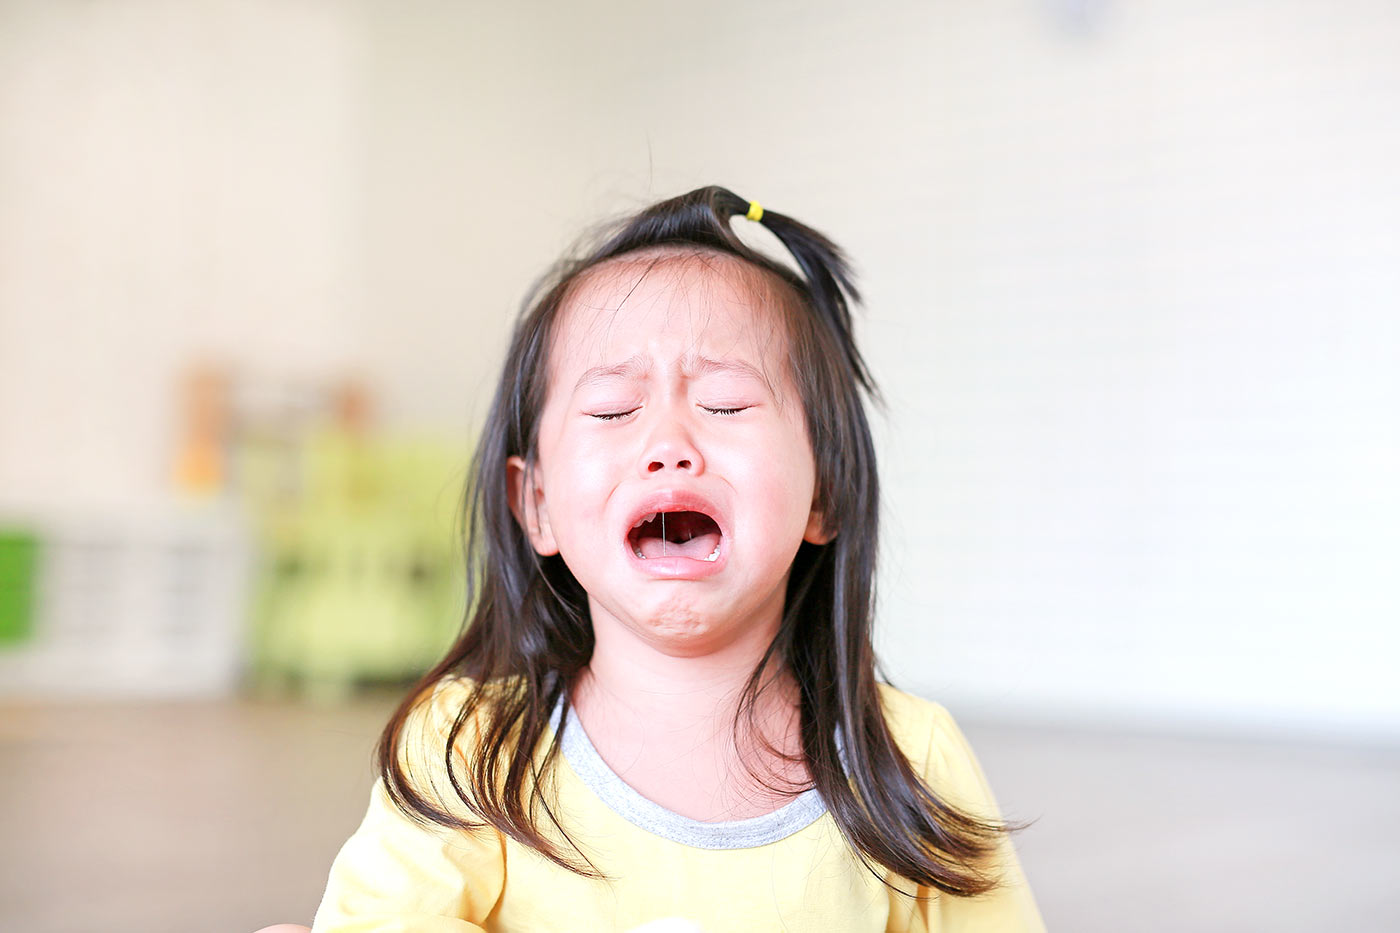 Little girl crying and upset